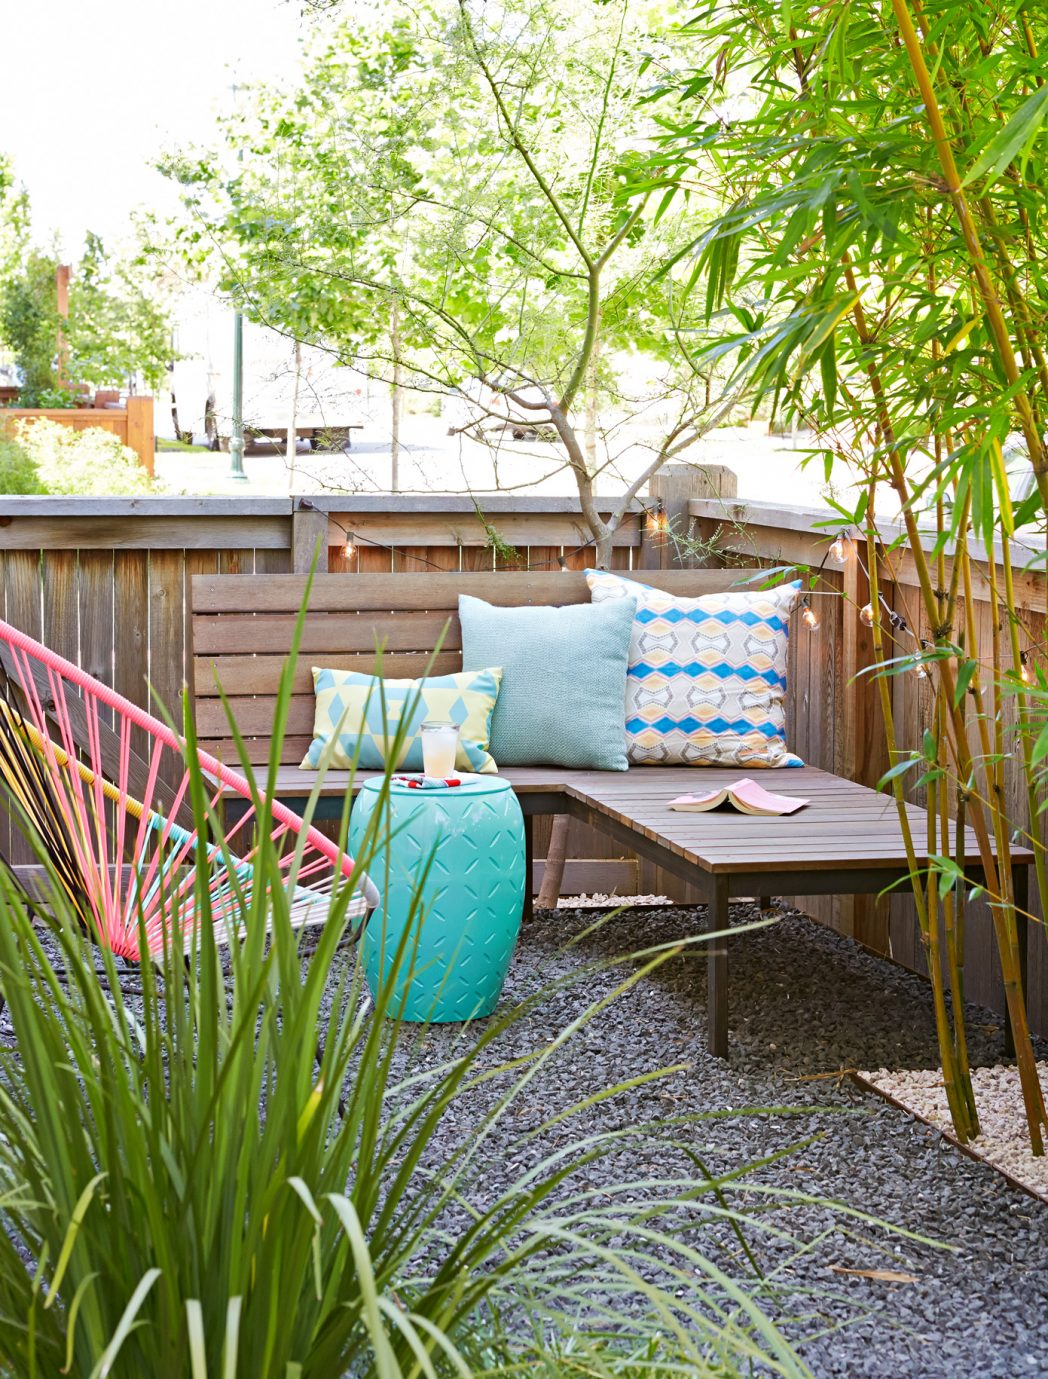 10 Awesome Concepts of How to Upgrade Backyards Ideas On A ... on Backyard Patios On A Budget id=65649